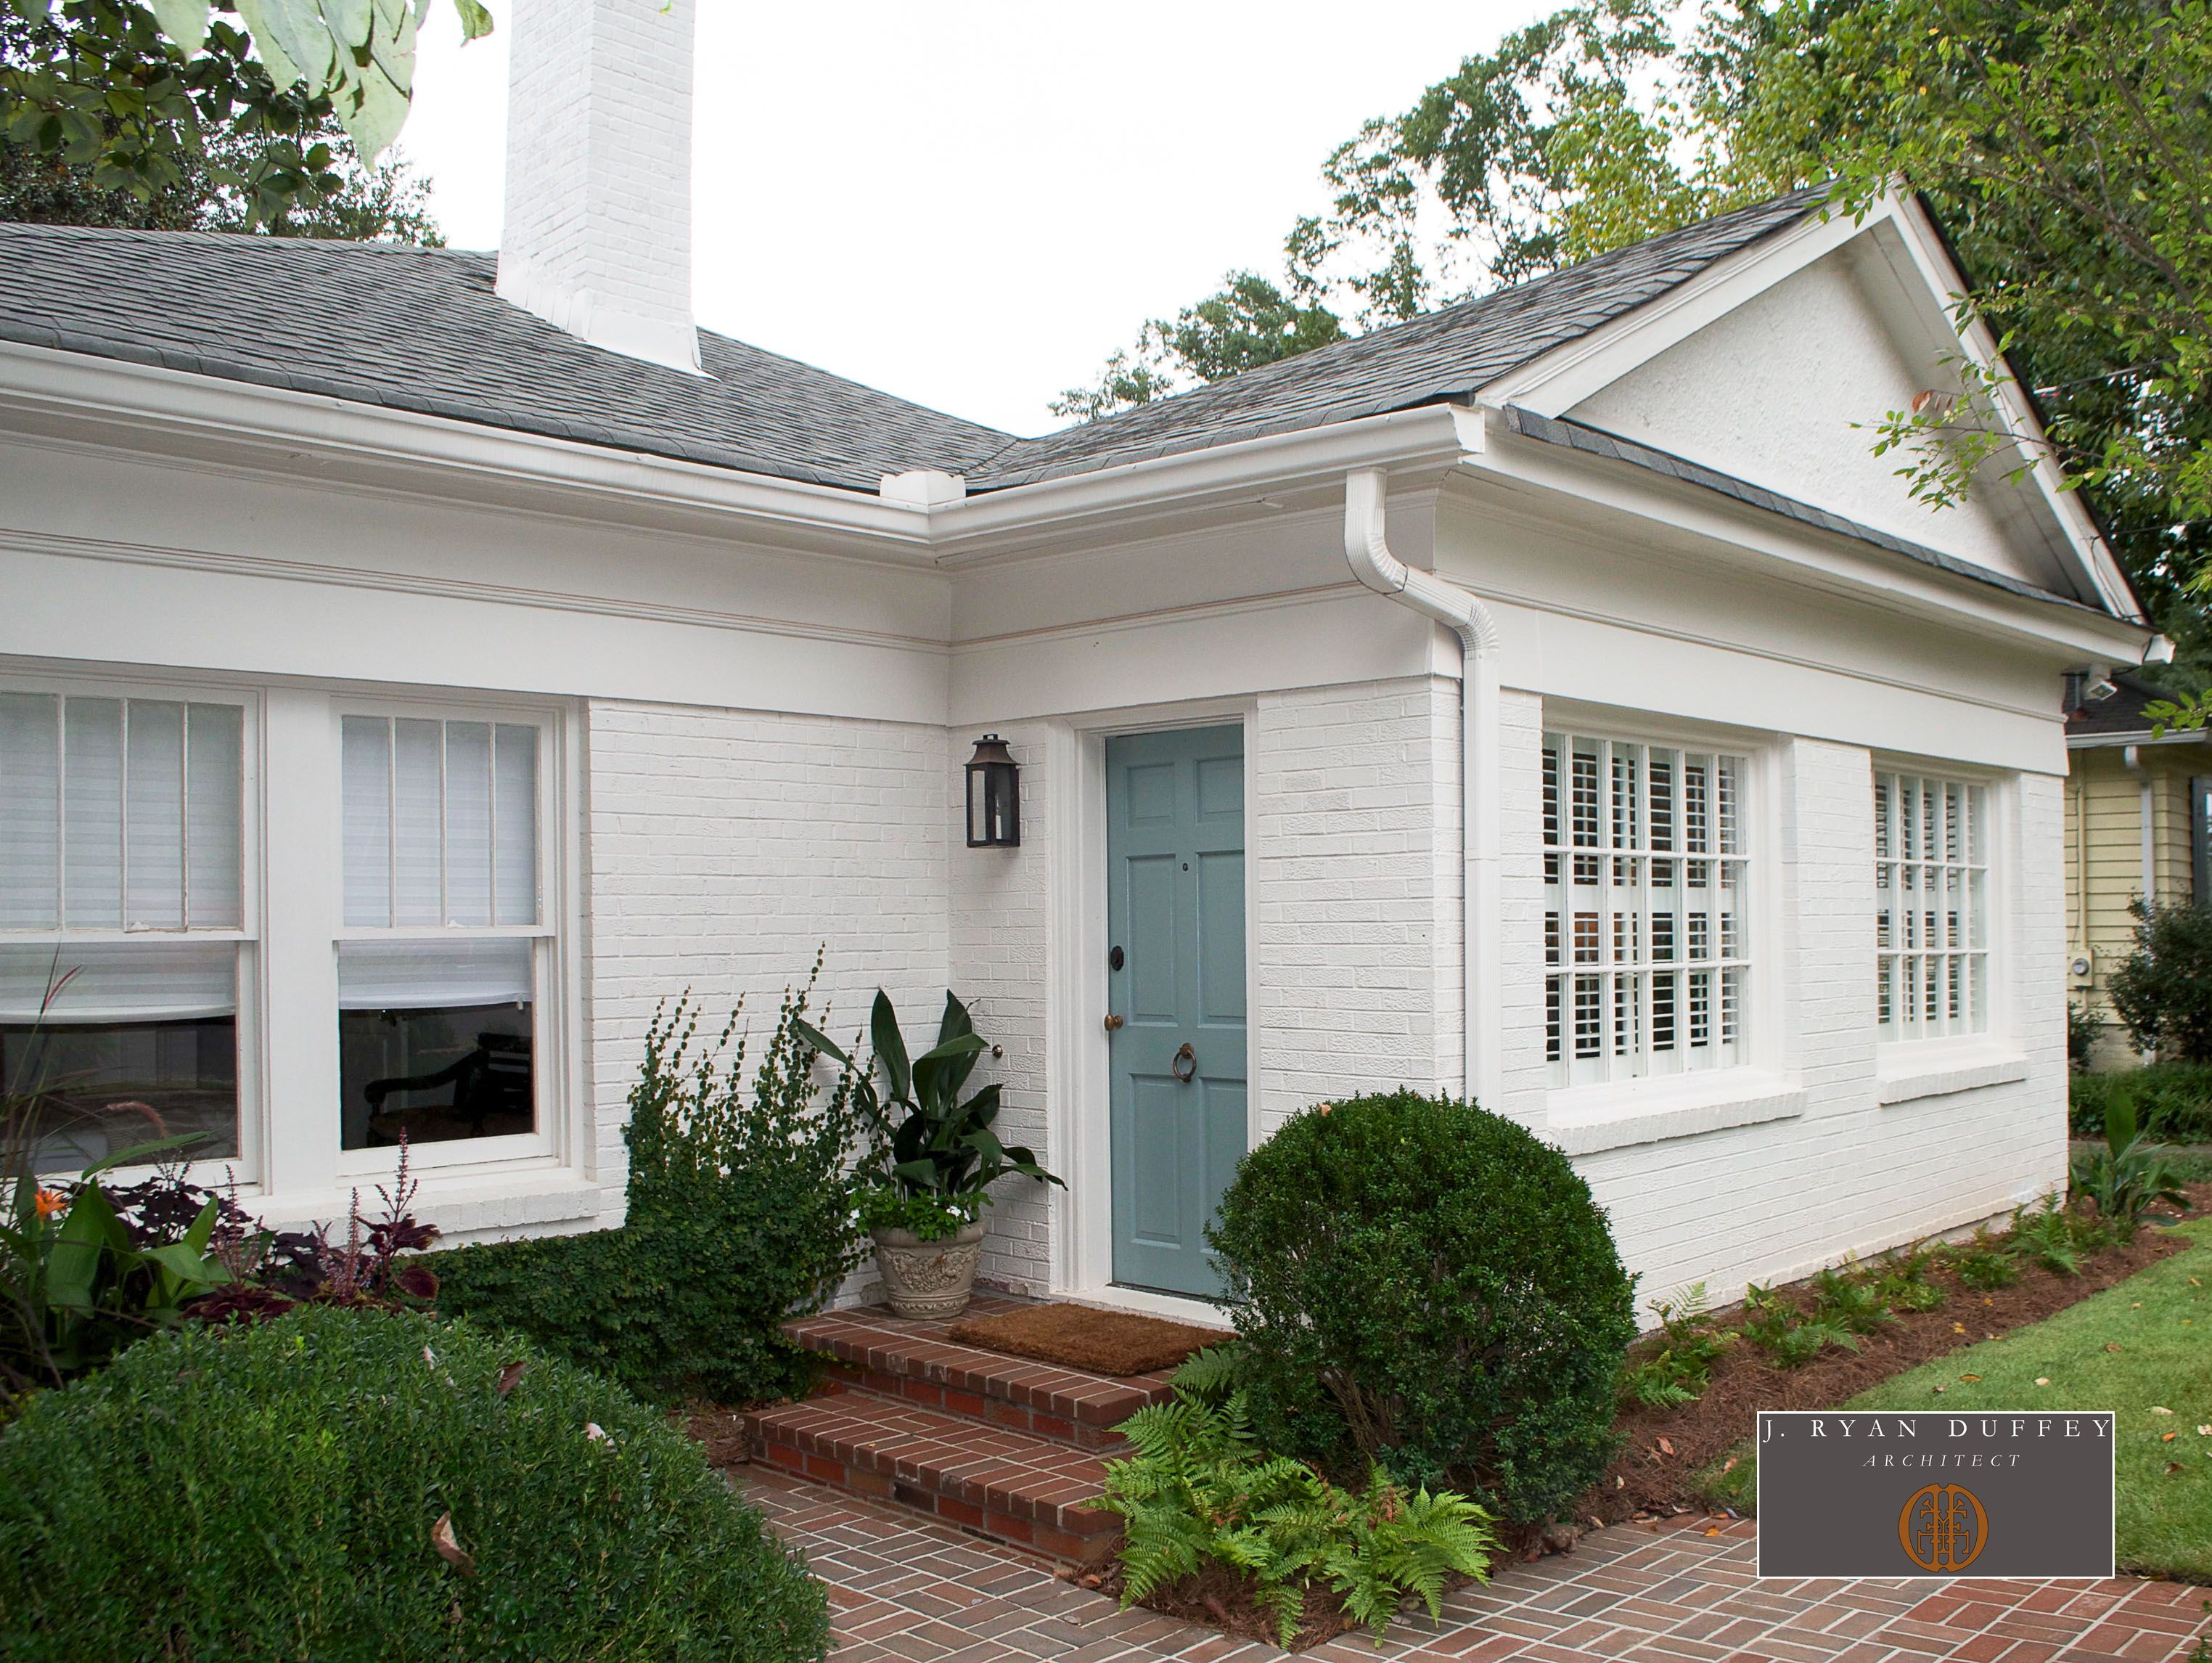 92a7cd1961de16e0fa58420df48017a7 Ranch Home Addition Plans Entryway on ranch bedroom additions, ranch kitchen additions, ranch porch additions, ranch house additions, ranch exterior additions, ranch room additions, ranch home additions, ranch garage additions, ranch front additions,